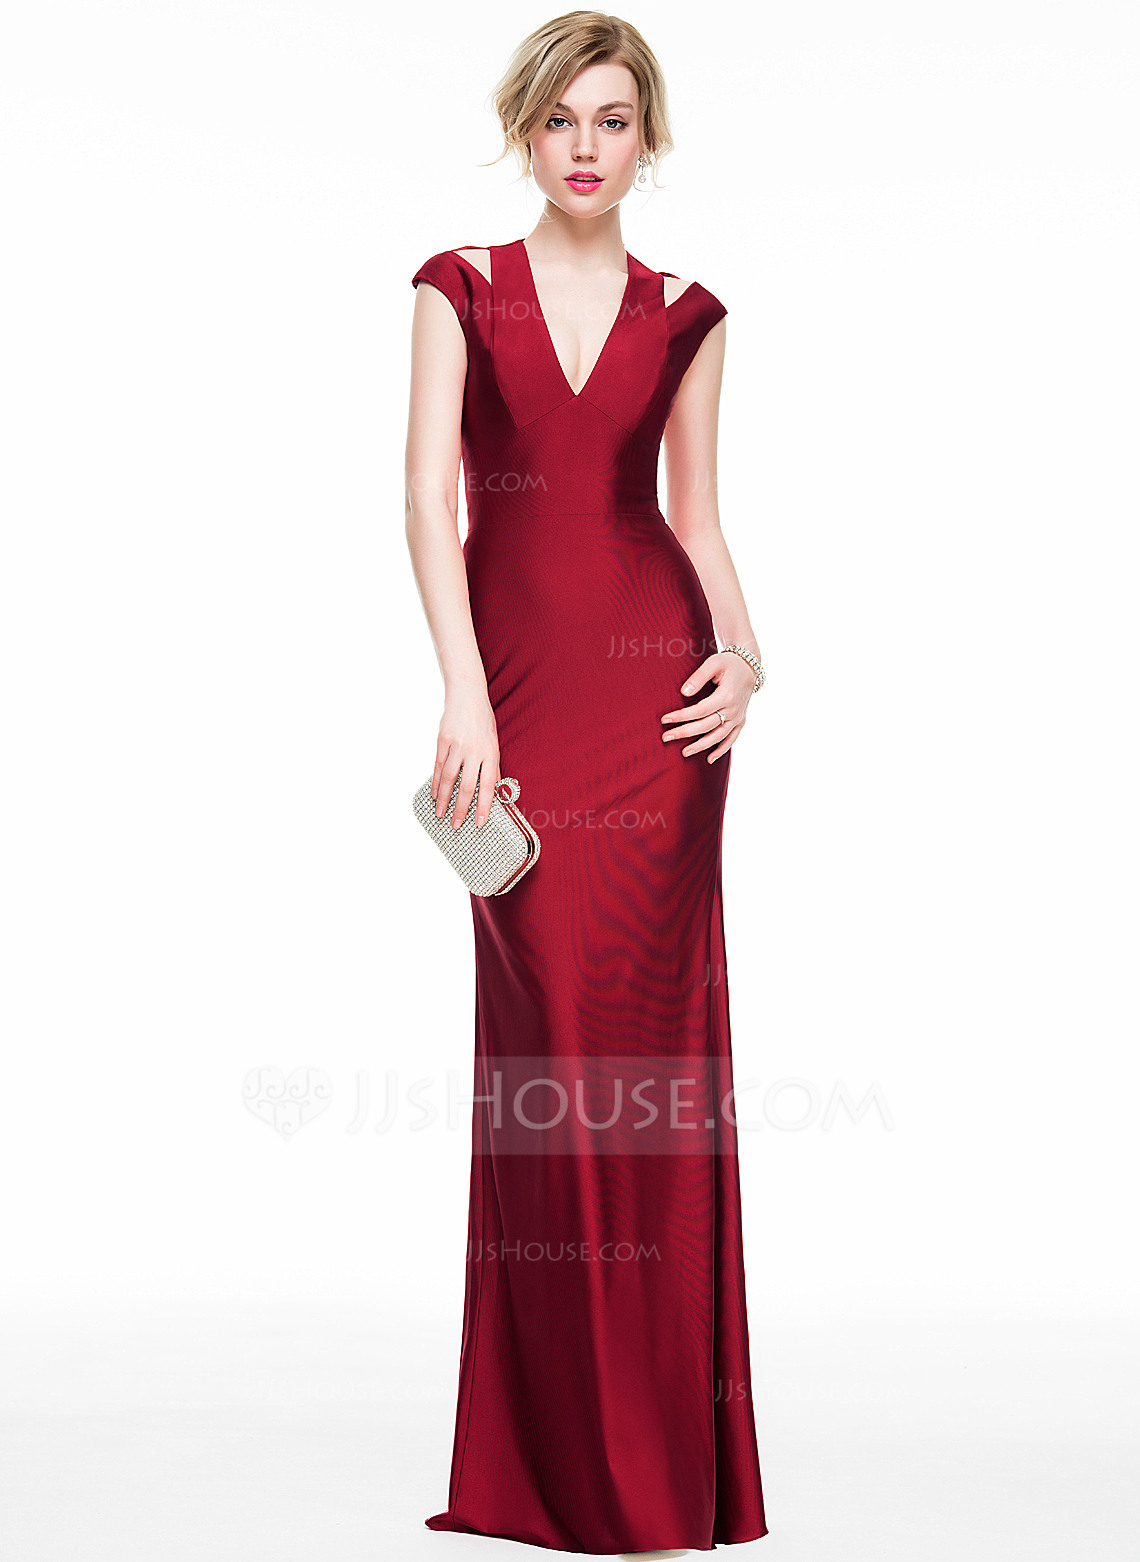 Elegant Abendkleid Bodenlang BoutiqueFormal Top Abendkleid Bodenlang Boutique